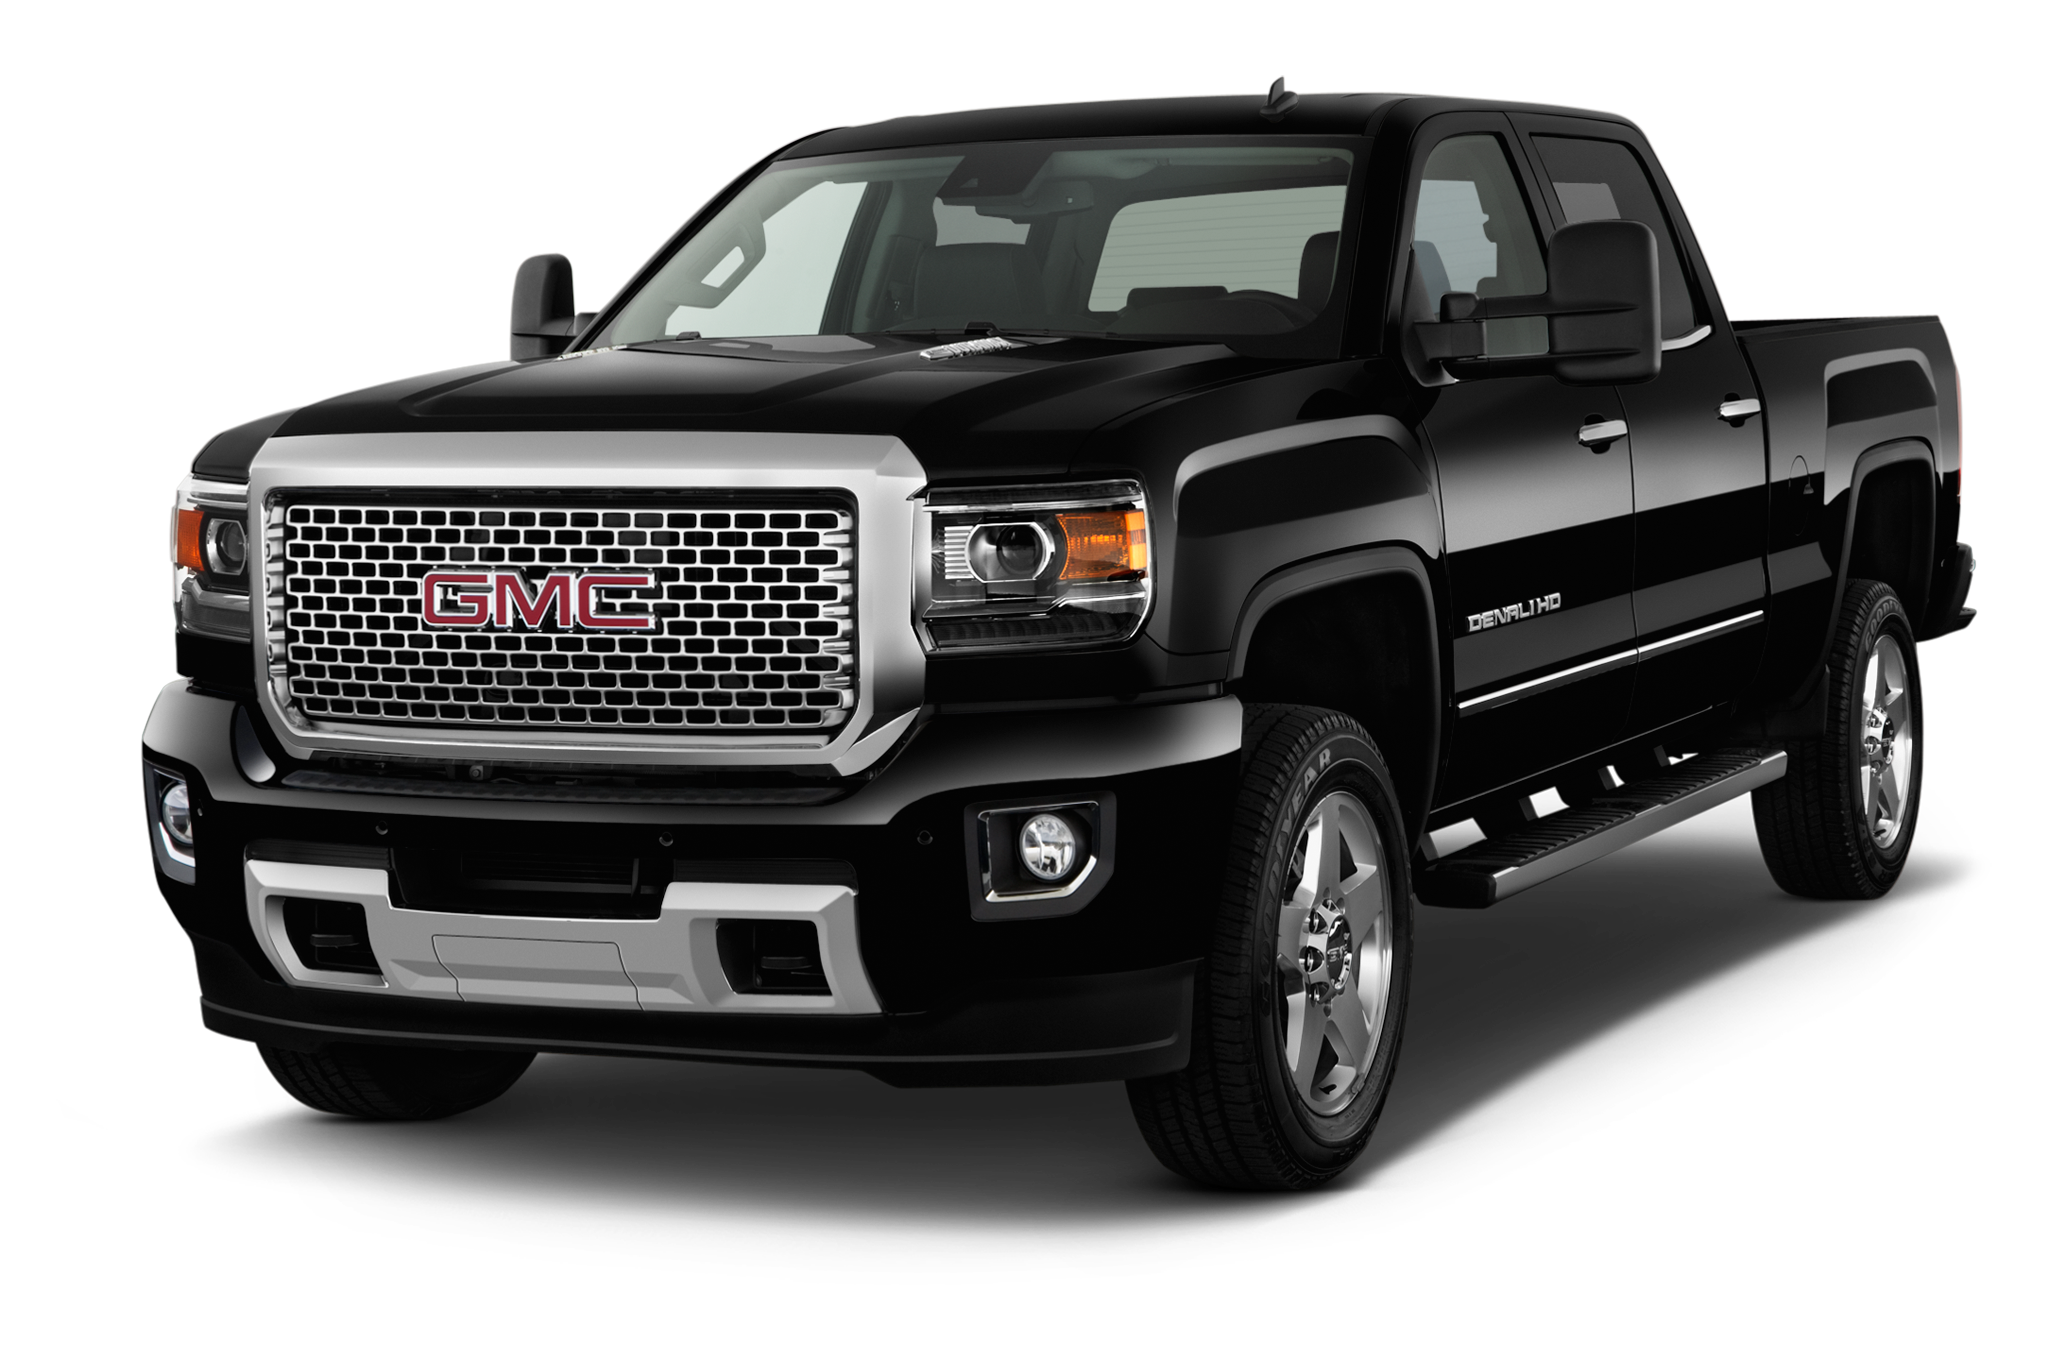 2016 gmc sierra 2500 denali hd 4wd crew cab standard box denali pricing msn autos. Black Bedroom Furniture Sets. Home Design Ideas